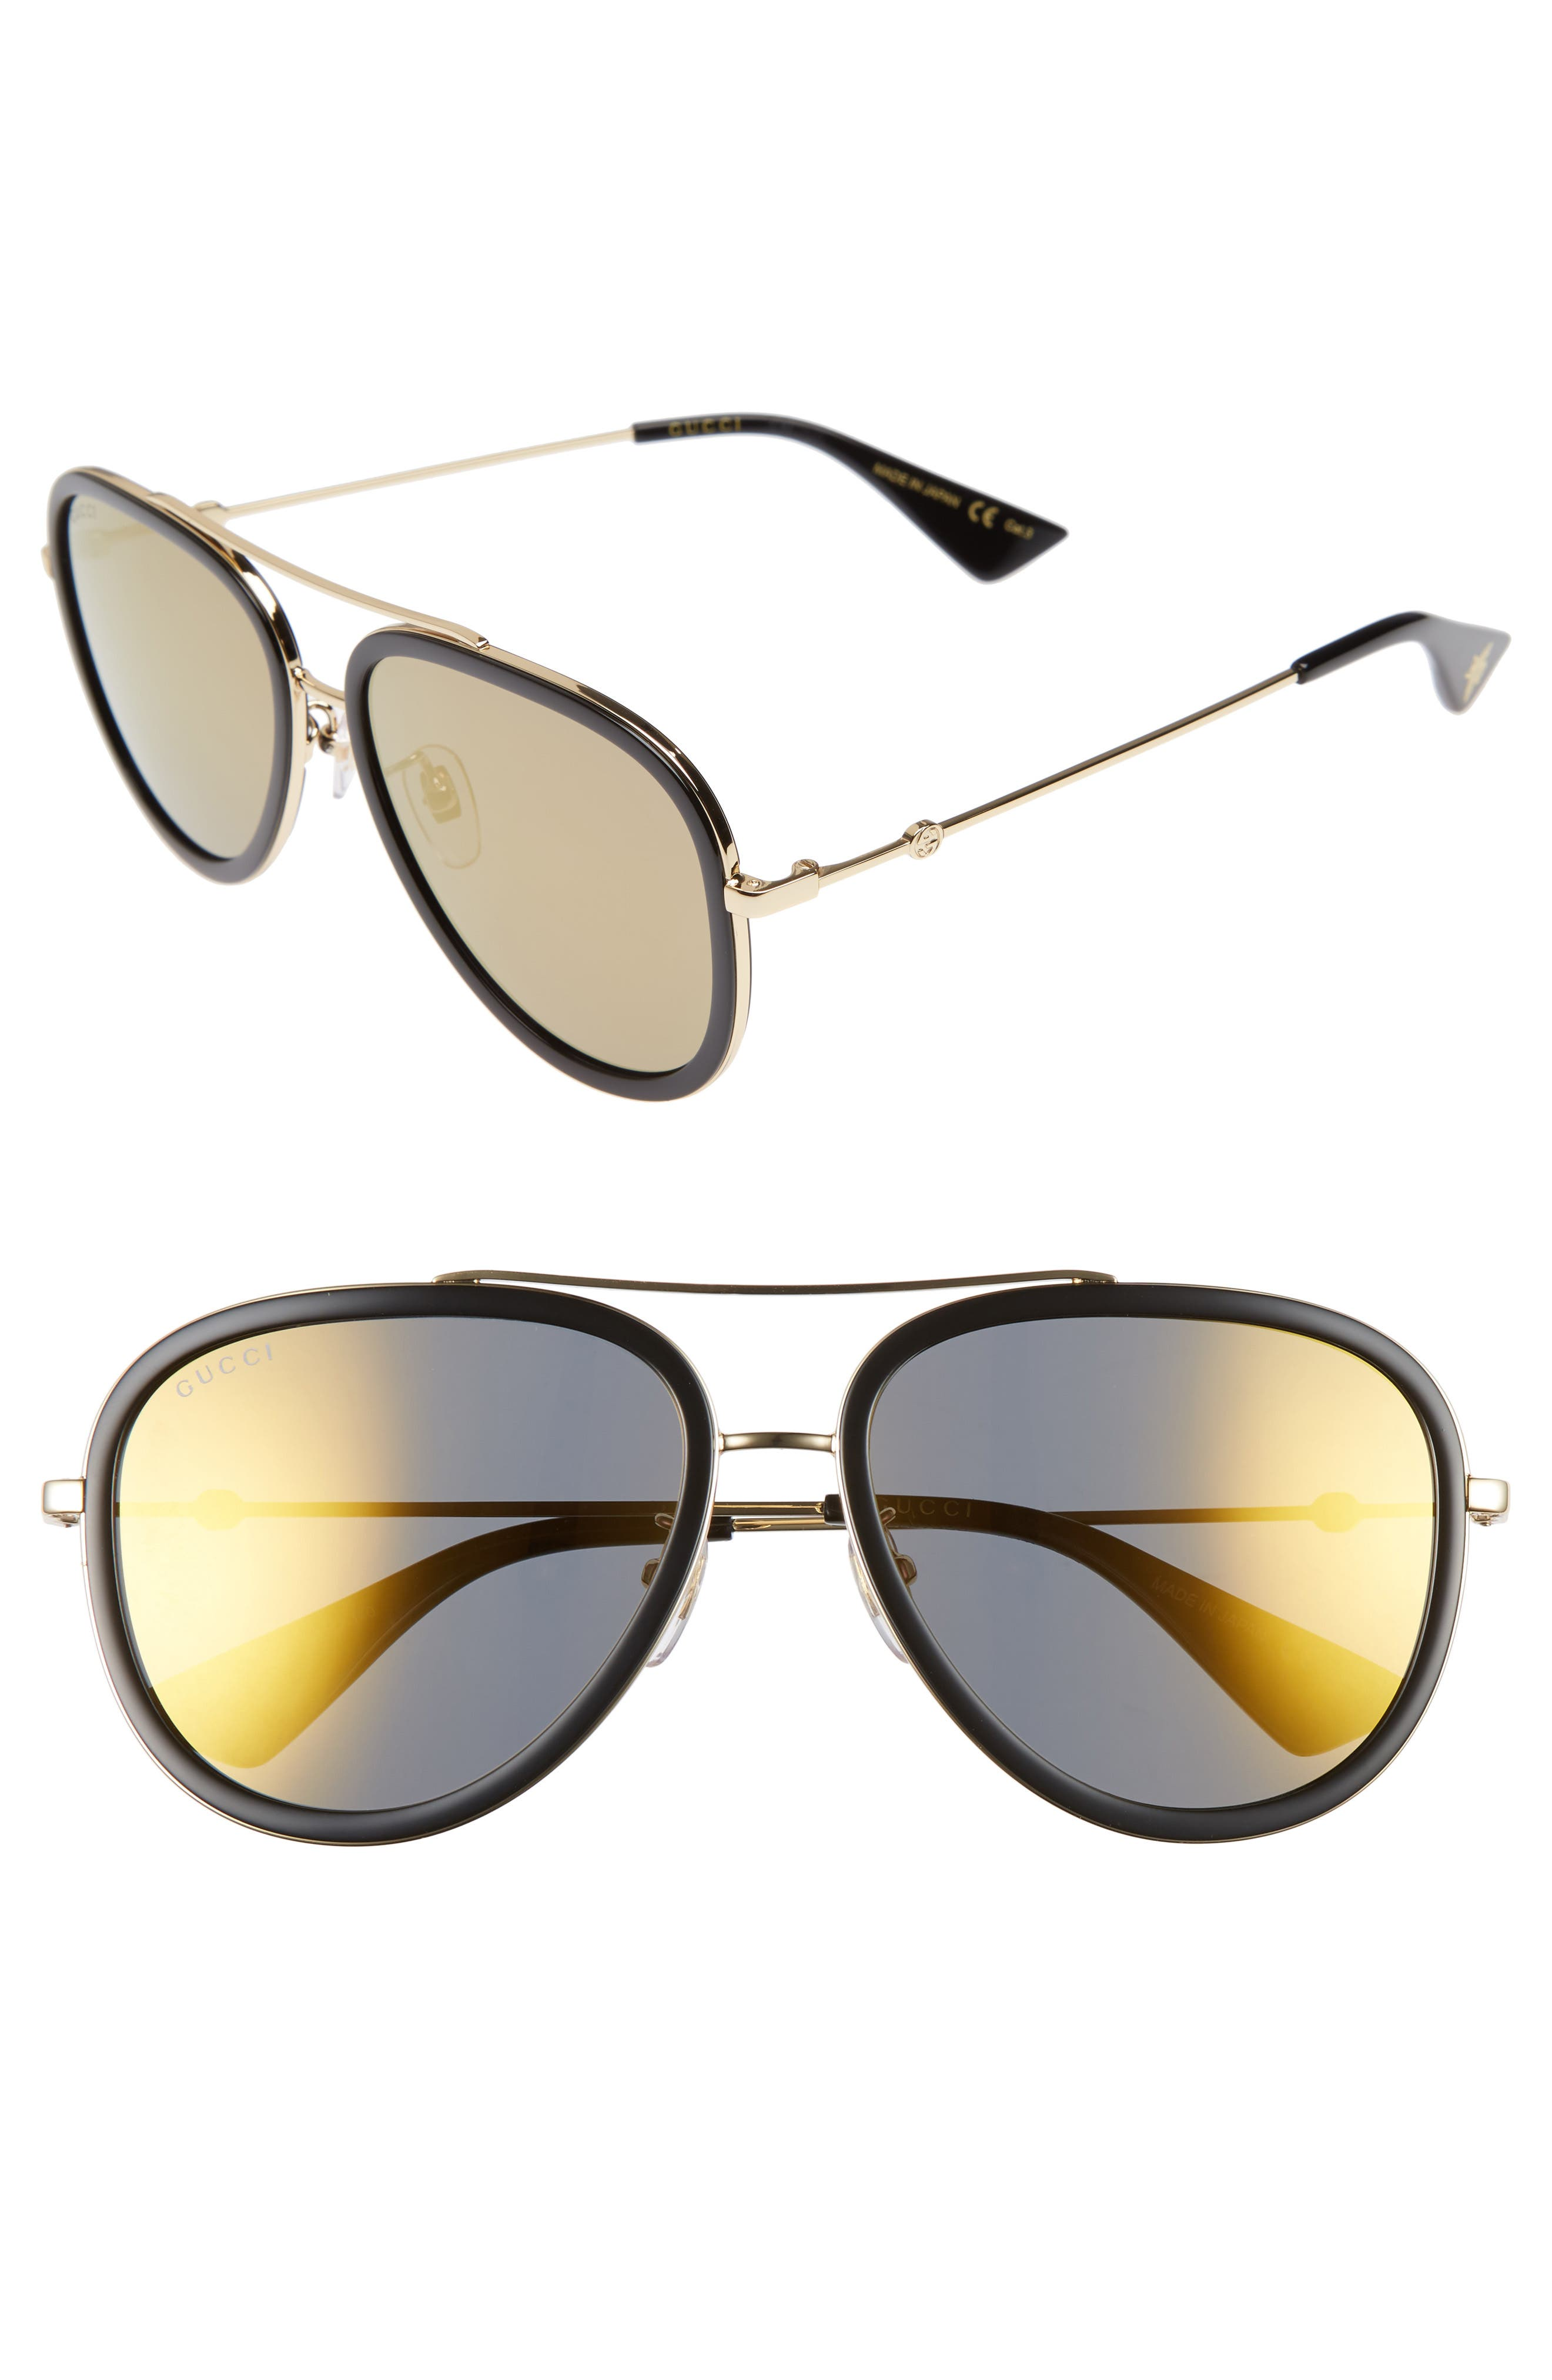 Alternate Image 1 Selected - Gucci 57mm Aivator Sunglasses